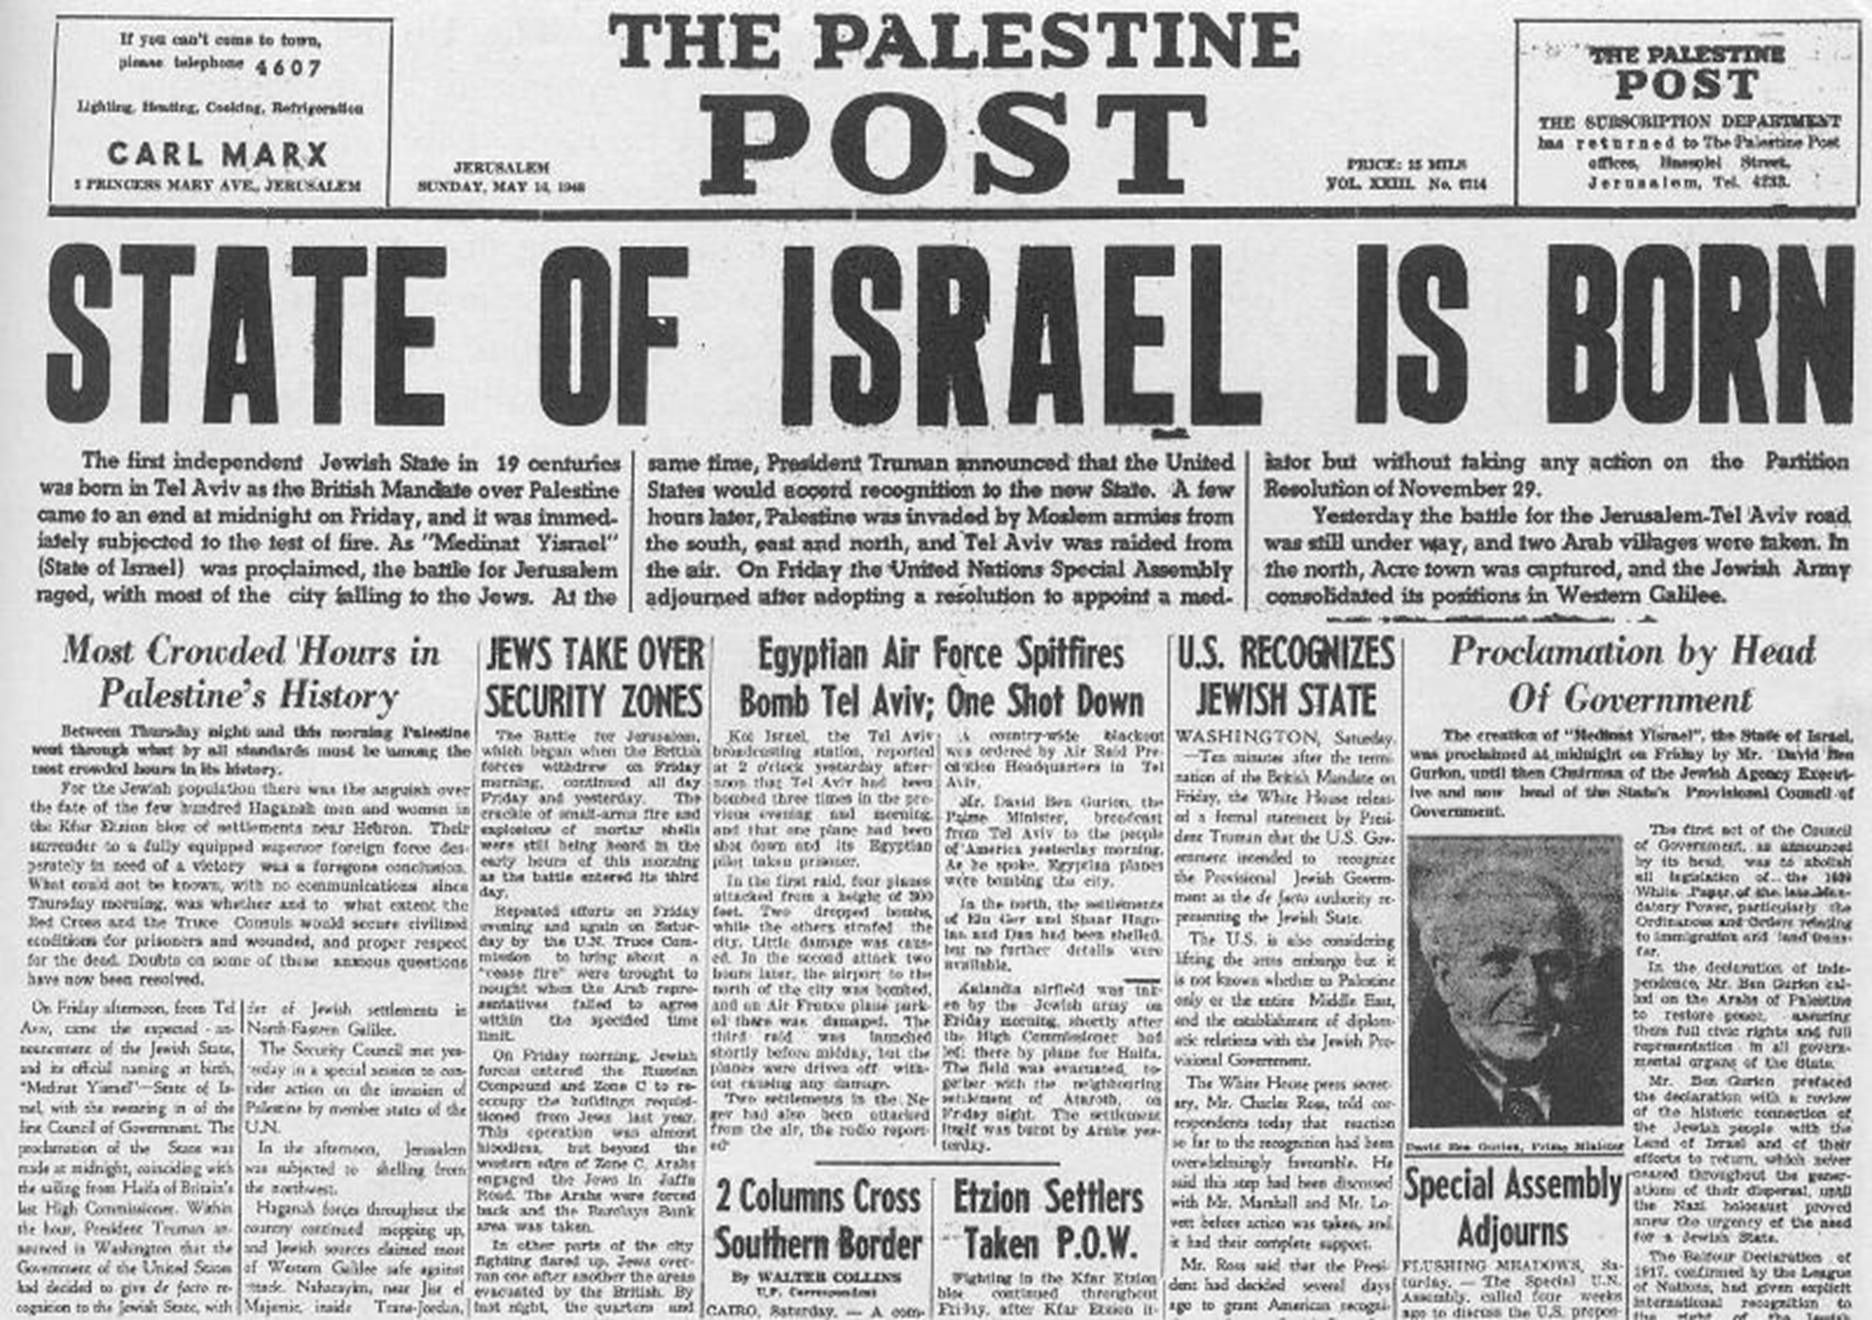 The State of Israel was reborn on May 14, 1948, at 4:00 p.m. ...